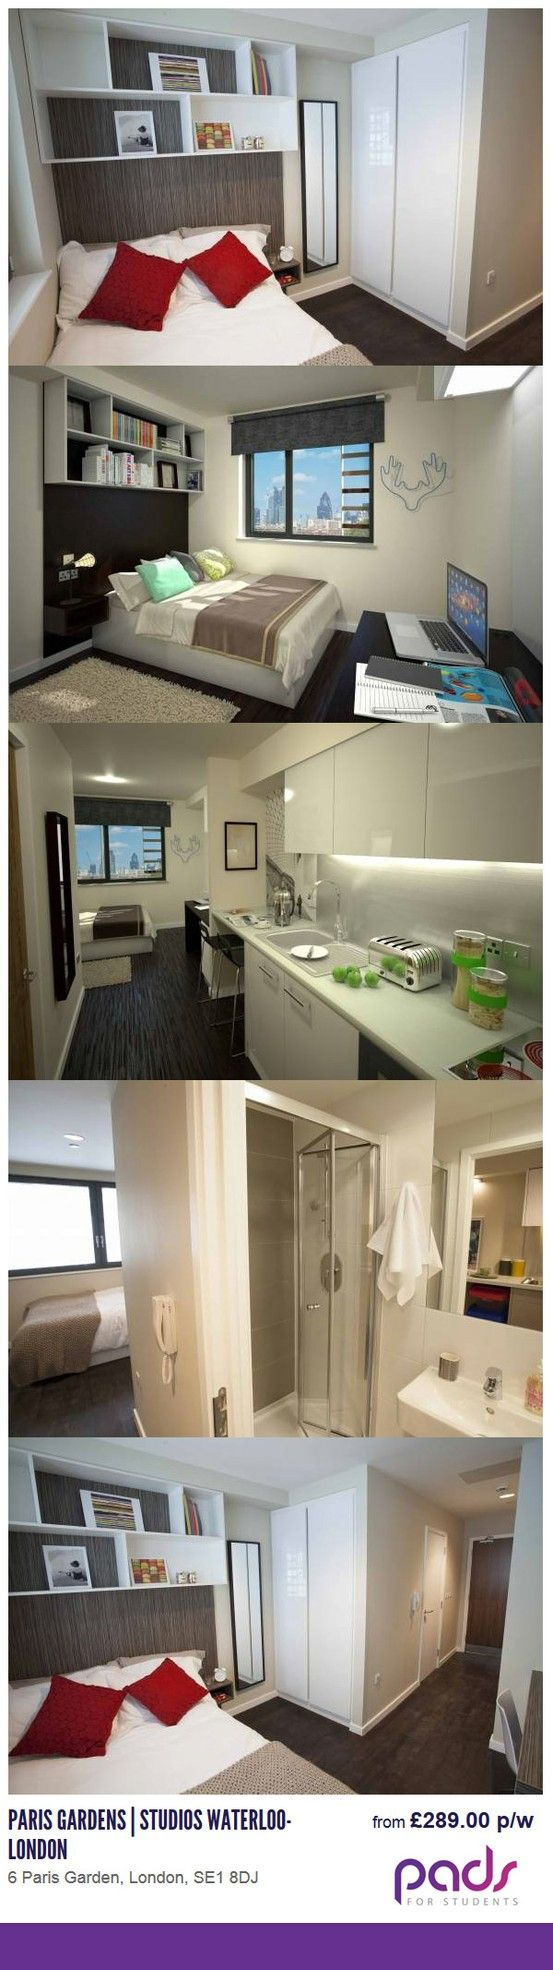 London Student Flats from www.padsforstudents.co.uk #londonFlats #StudentFlats #StudentAccommodation